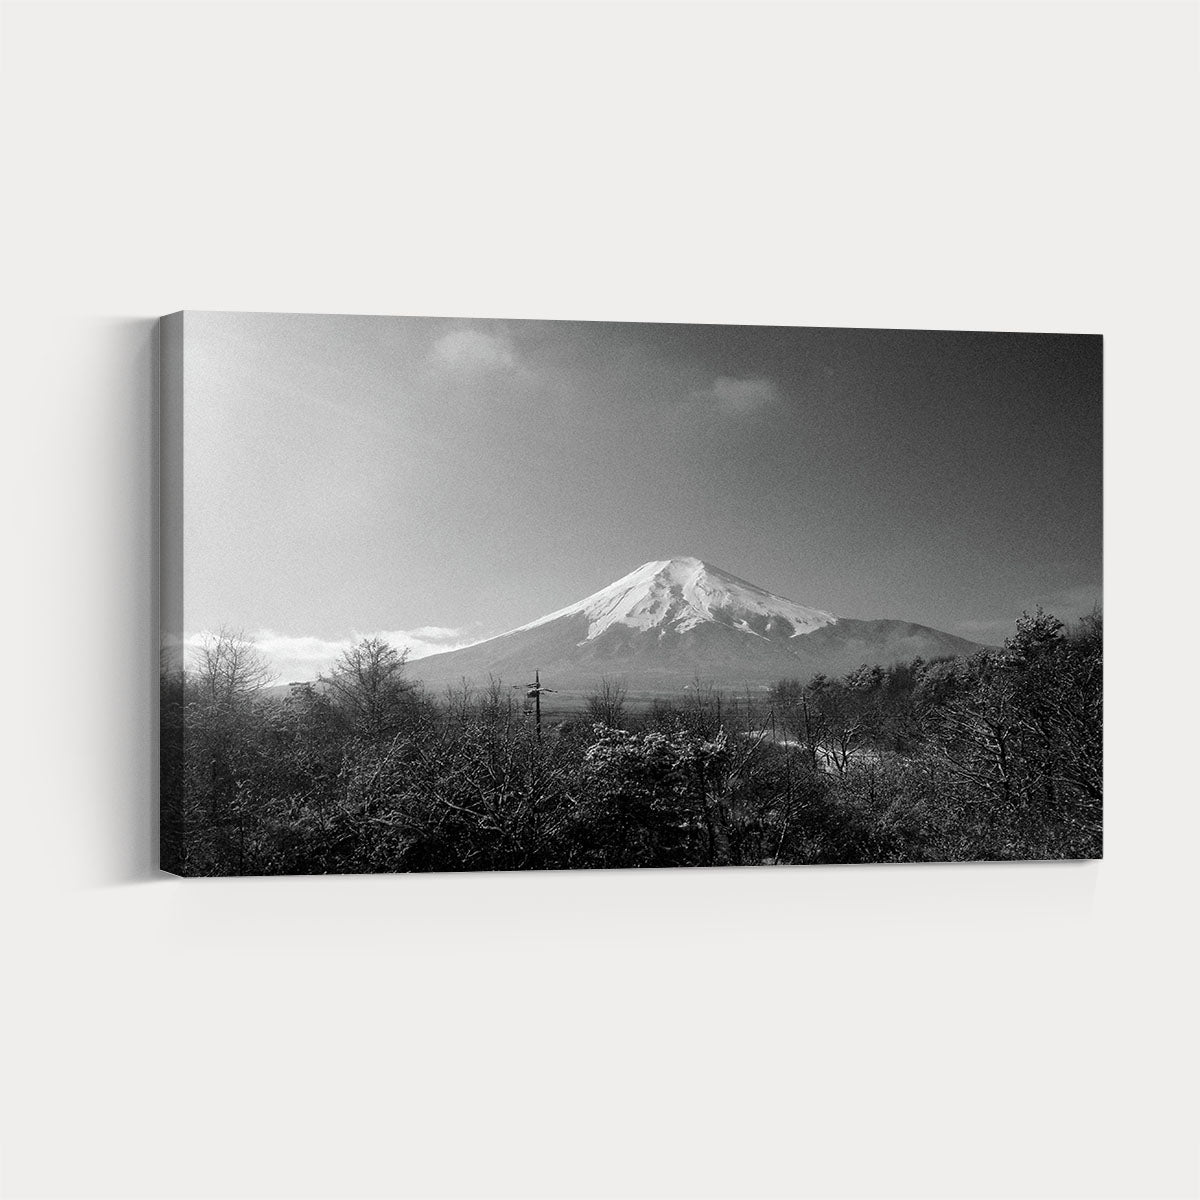 0a9684456 Scenic mountain scenery black and white decorative painting 006 ...